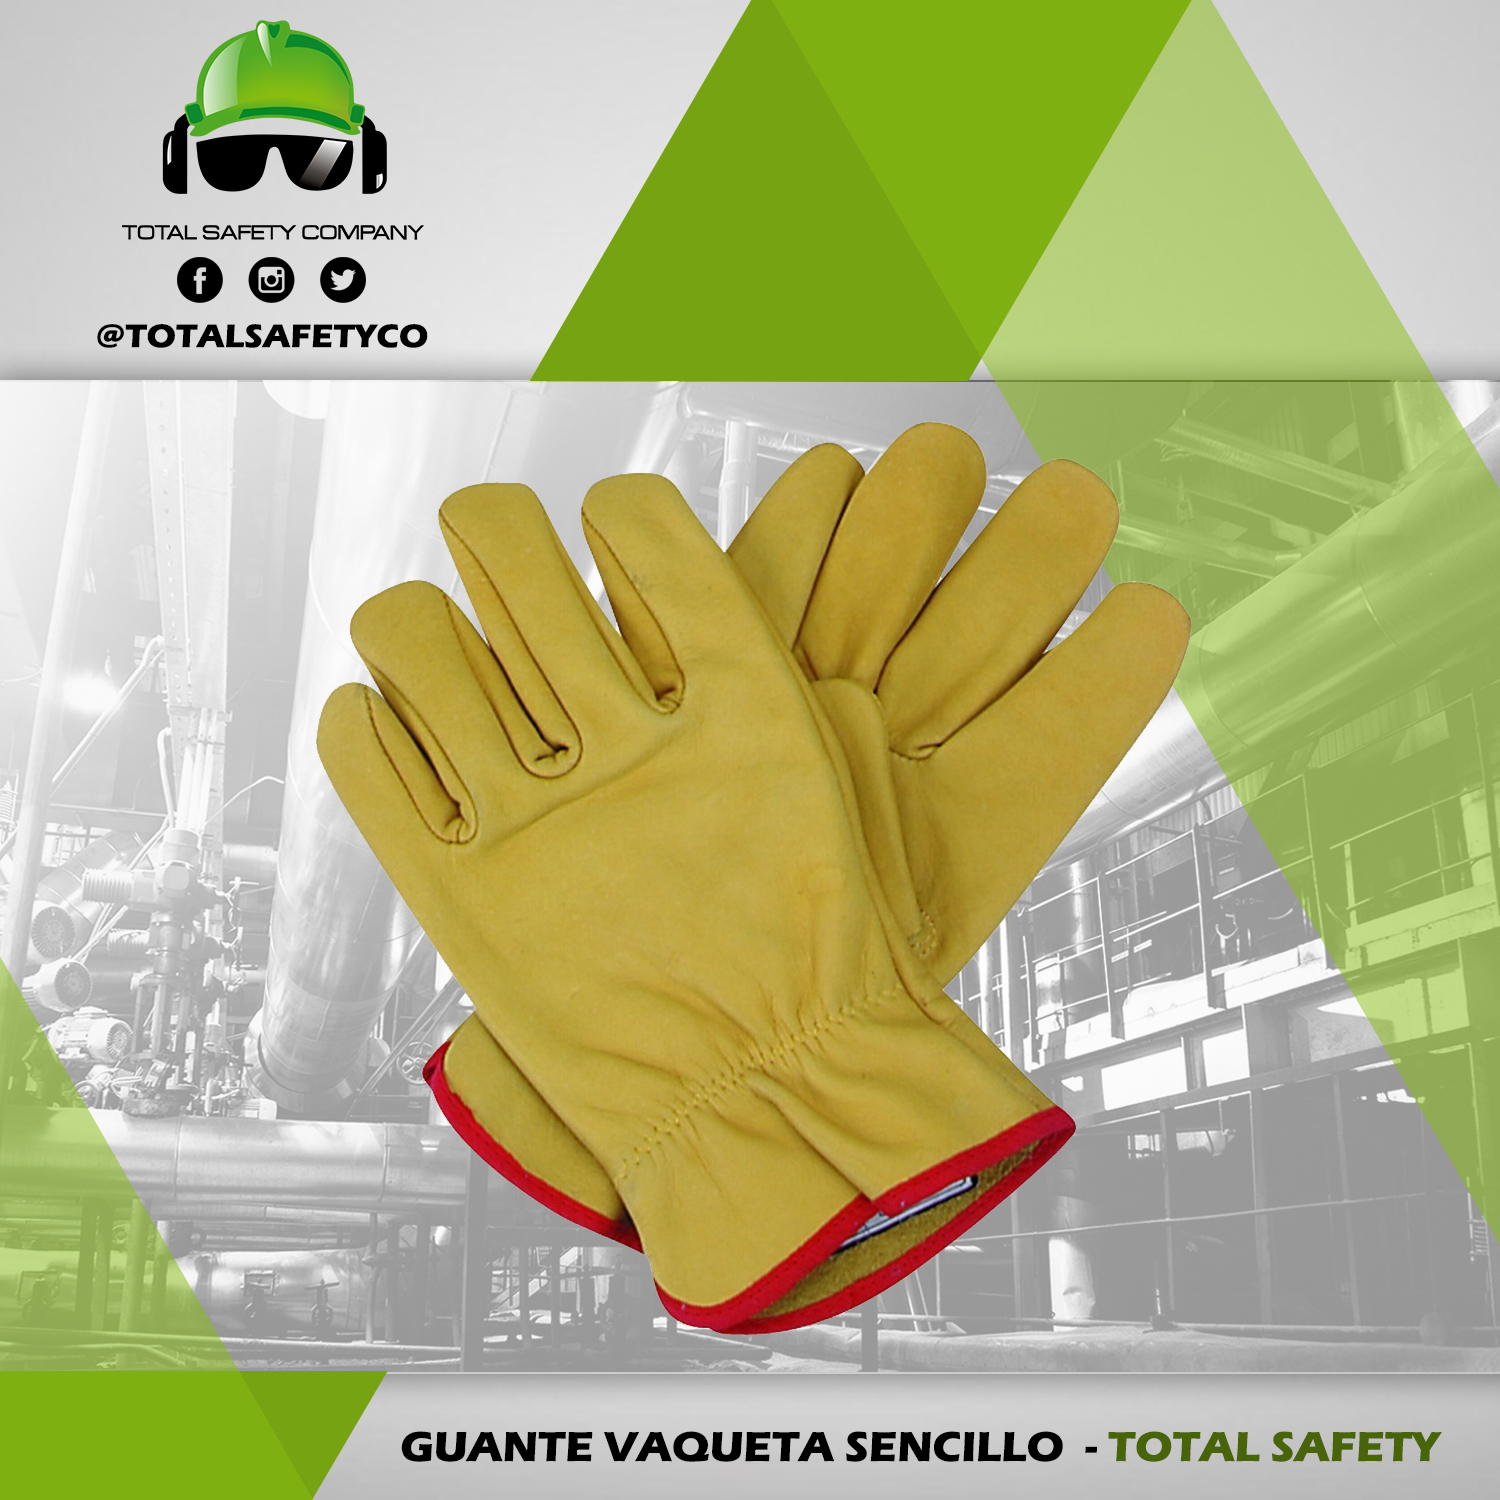 Guante vaqueta sencillo - TOTAL SAFETY